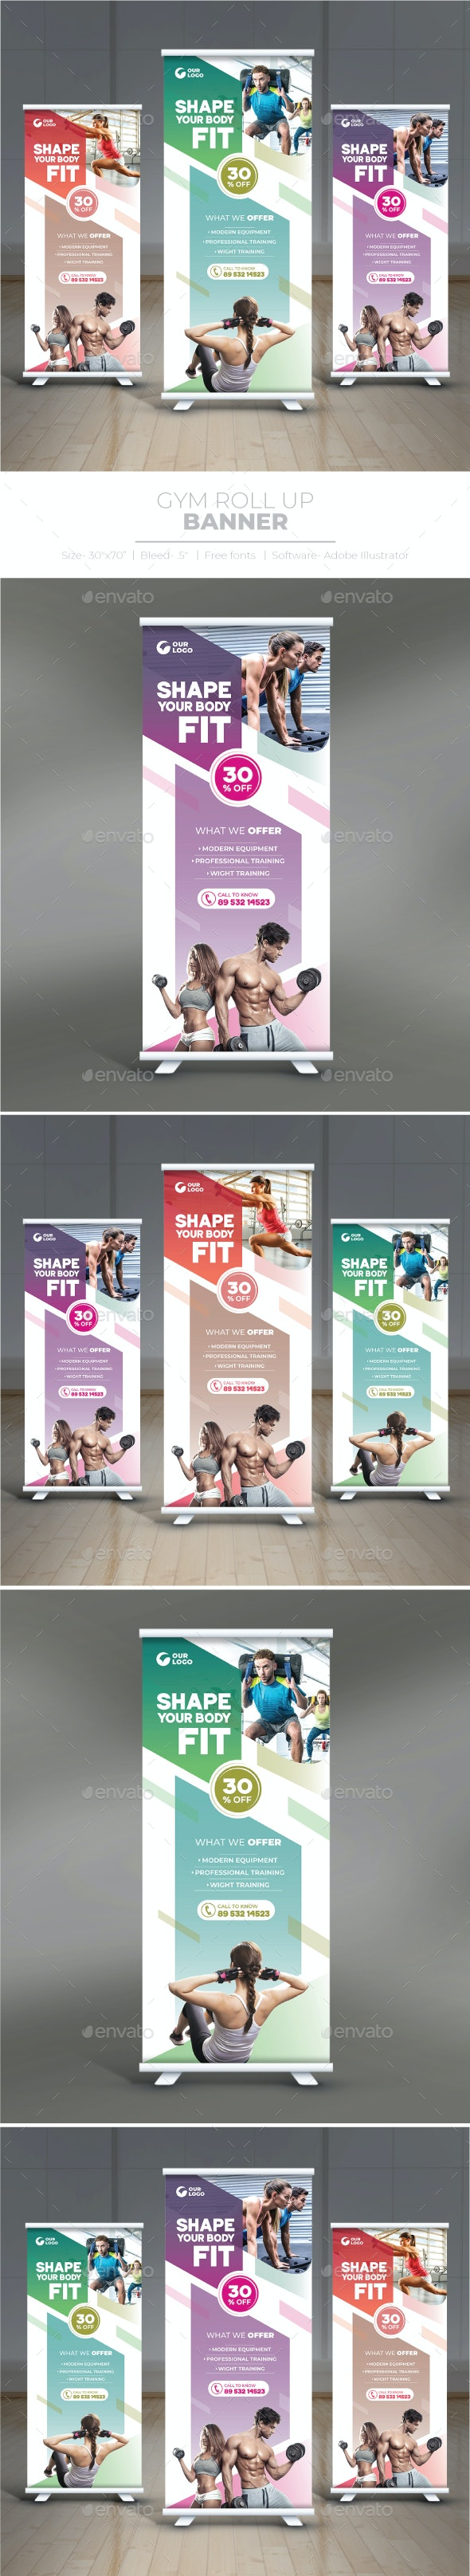 Gym Roll Up Banner - Miscellaneous Print Templates